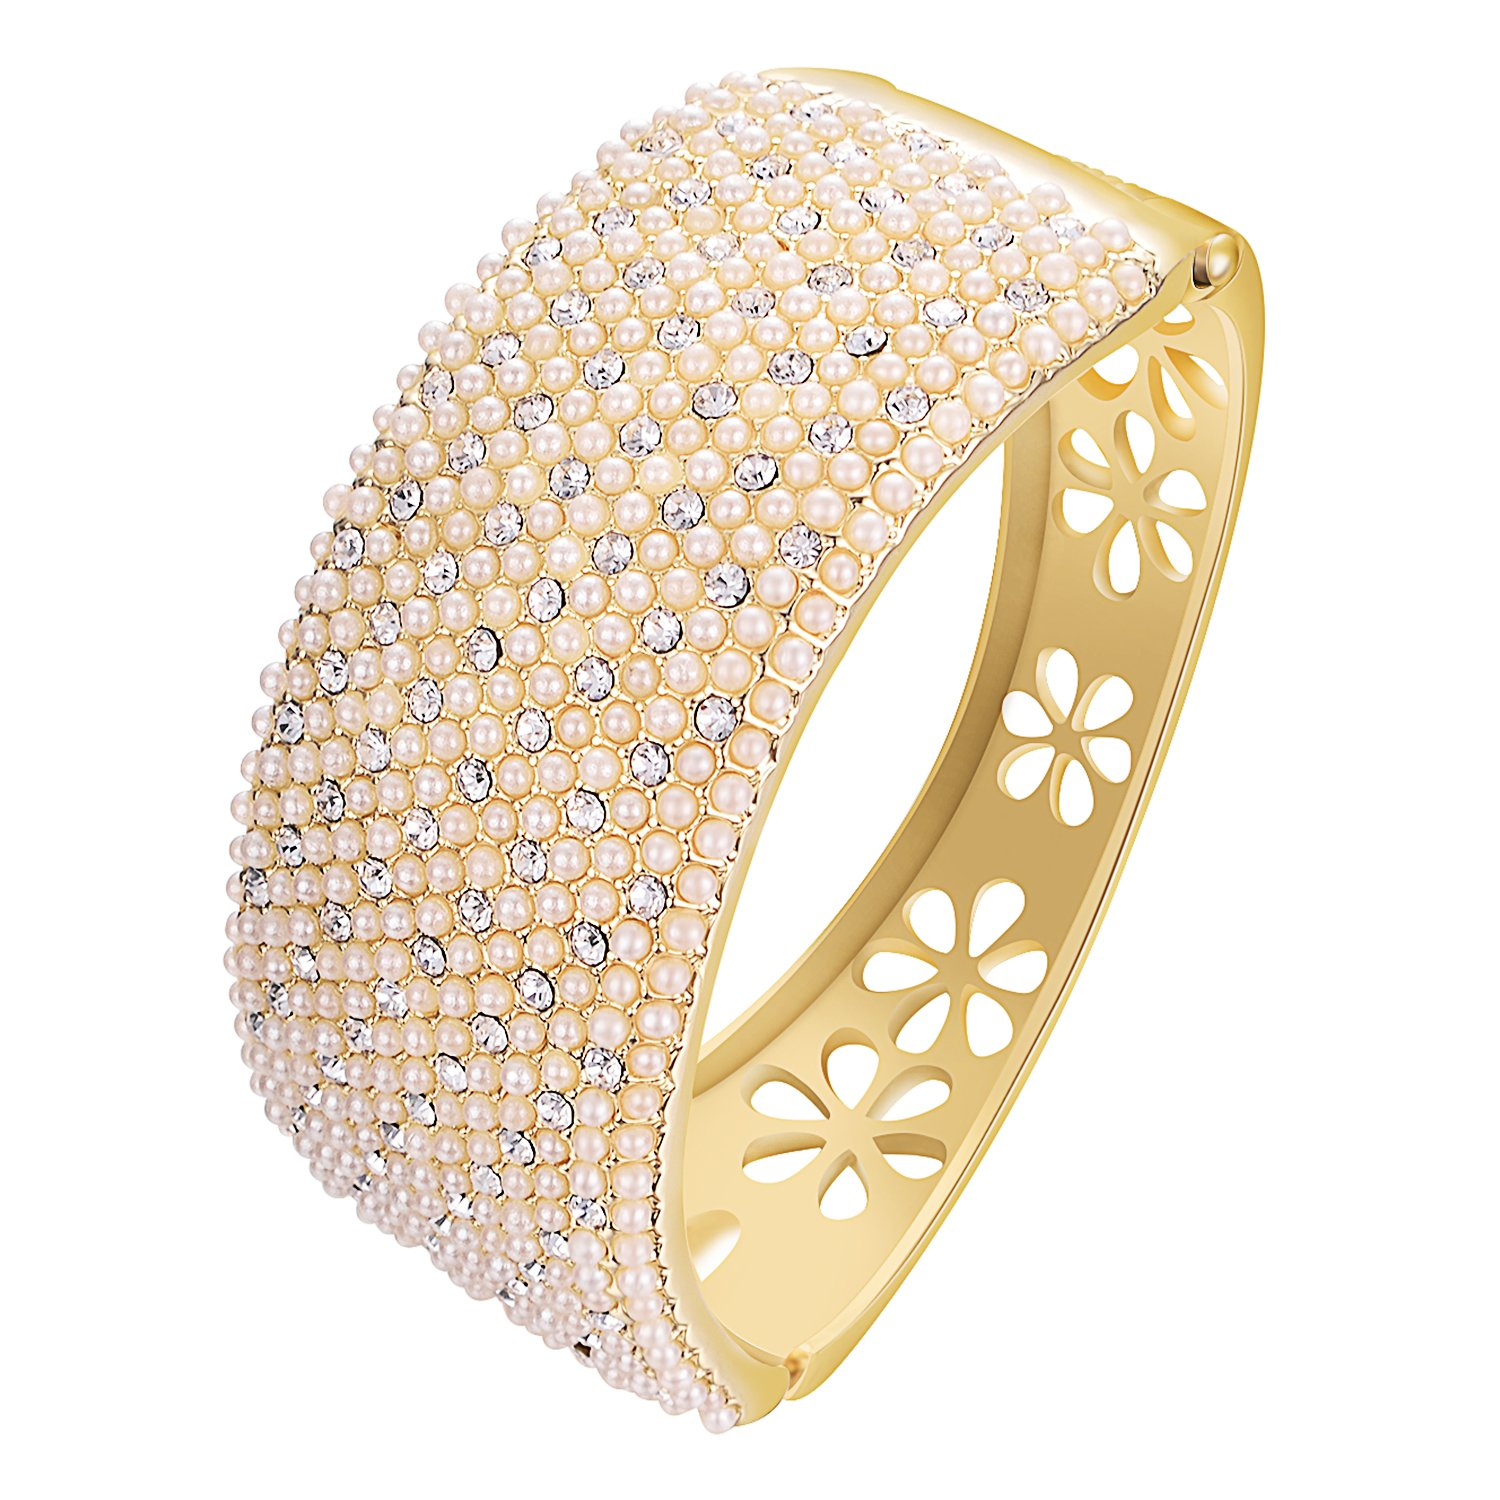 Yoursfs Freshwater Cultured Pearl Hollow Flower Fashion Jewelry Bracelet Yellow Gold Plated Classic Ladies Bangle B627R1-CA